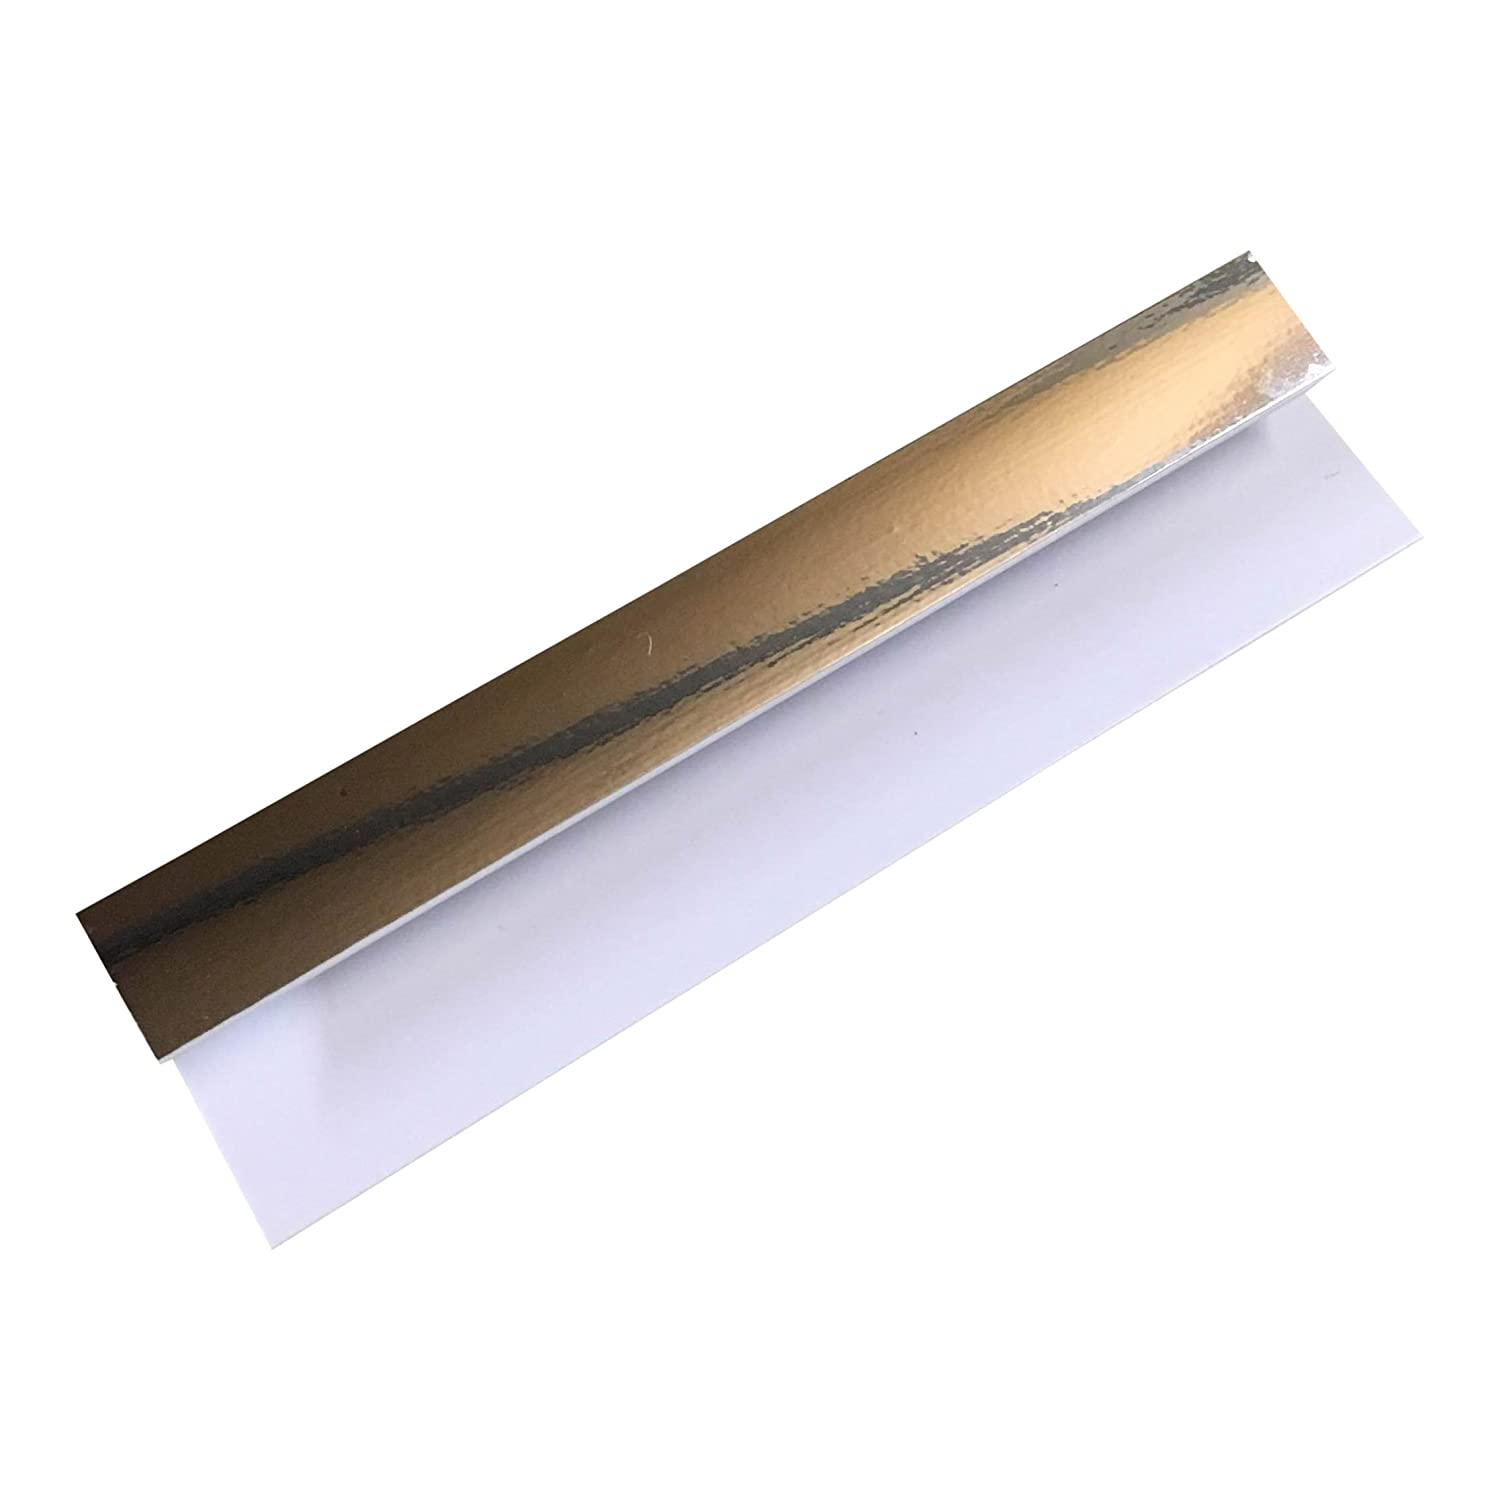 Silver 8mm End Cap Trim For Bathroom Panels Shower Wet Wall PVC ...